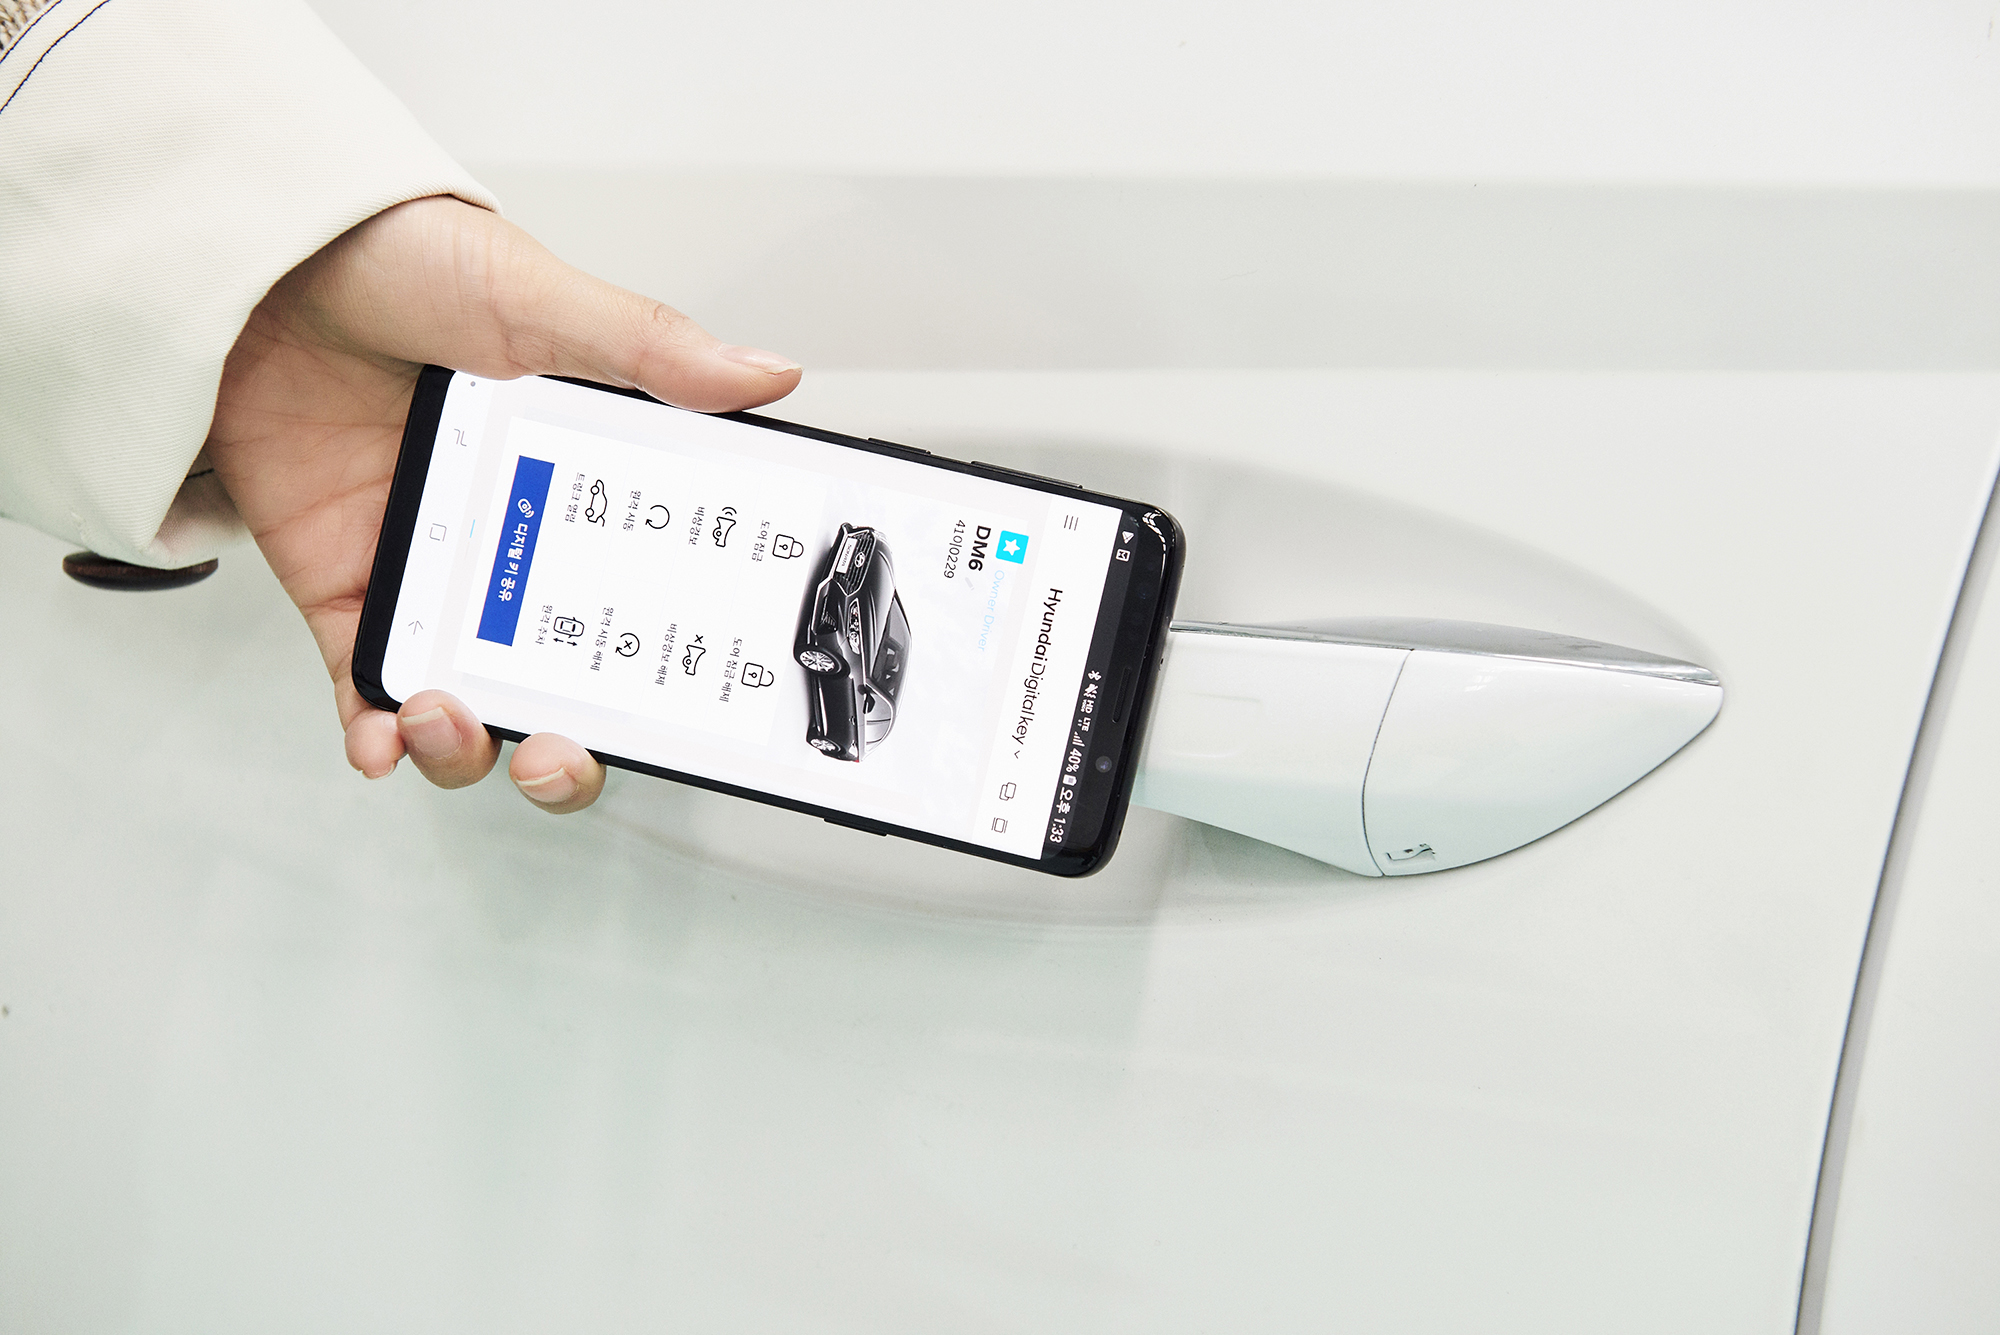 190304_Hyundai Motor Group Develops Smartphone-based Digital Key_Press Photo1.jpeg